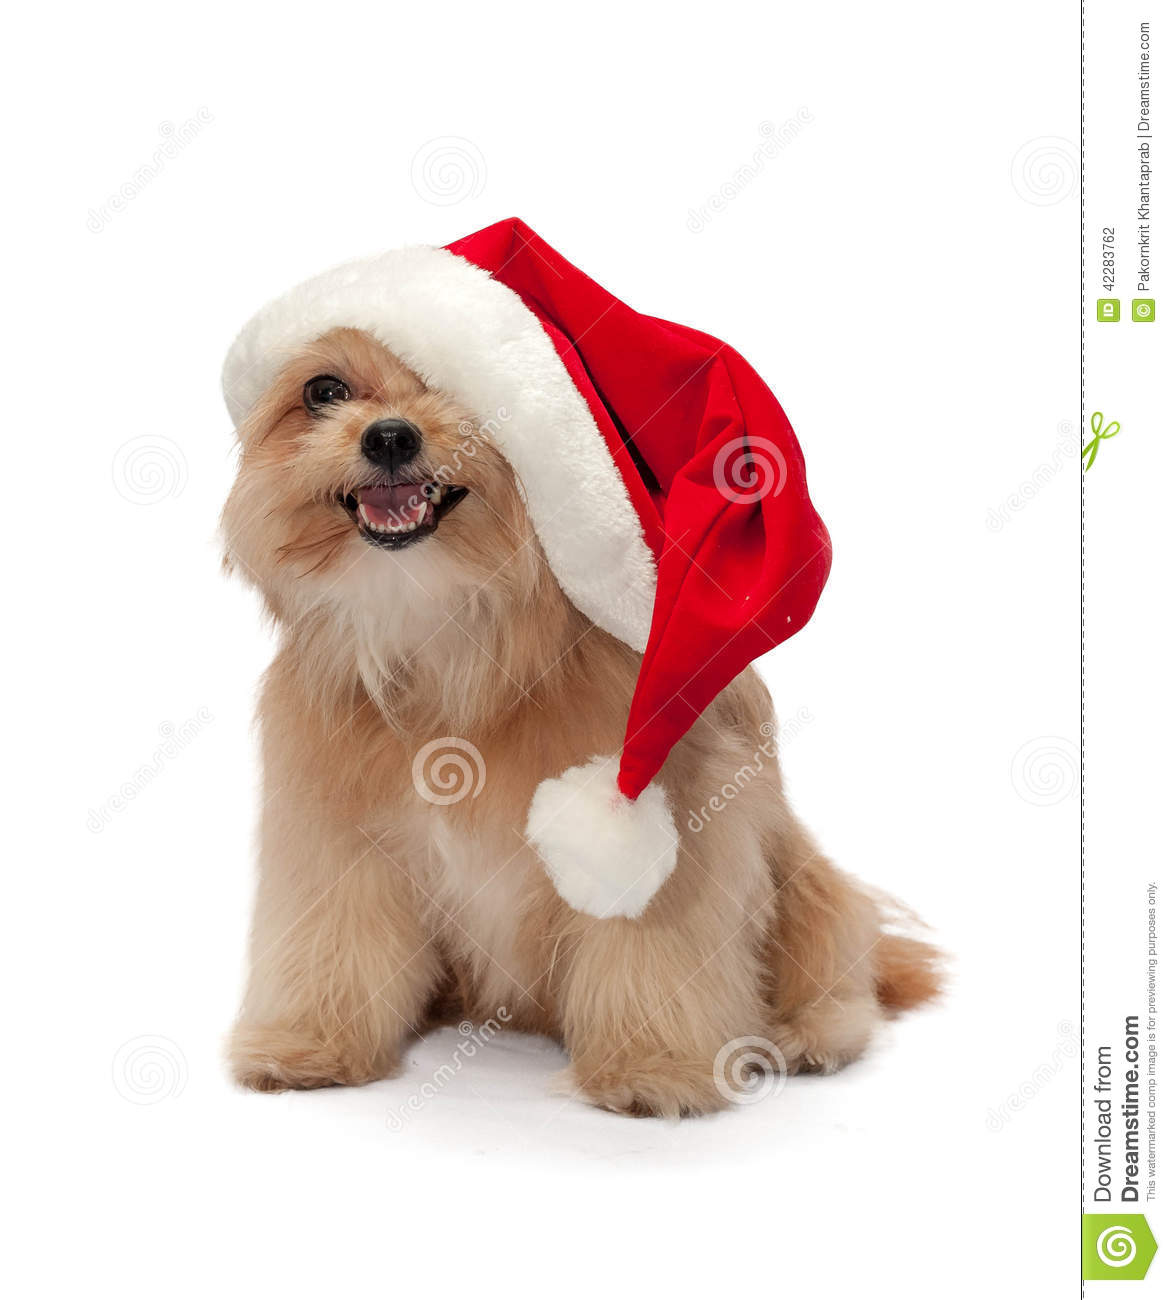 Cute Dog In Christmas Hat Stock Photo Image Of Looking 42283762